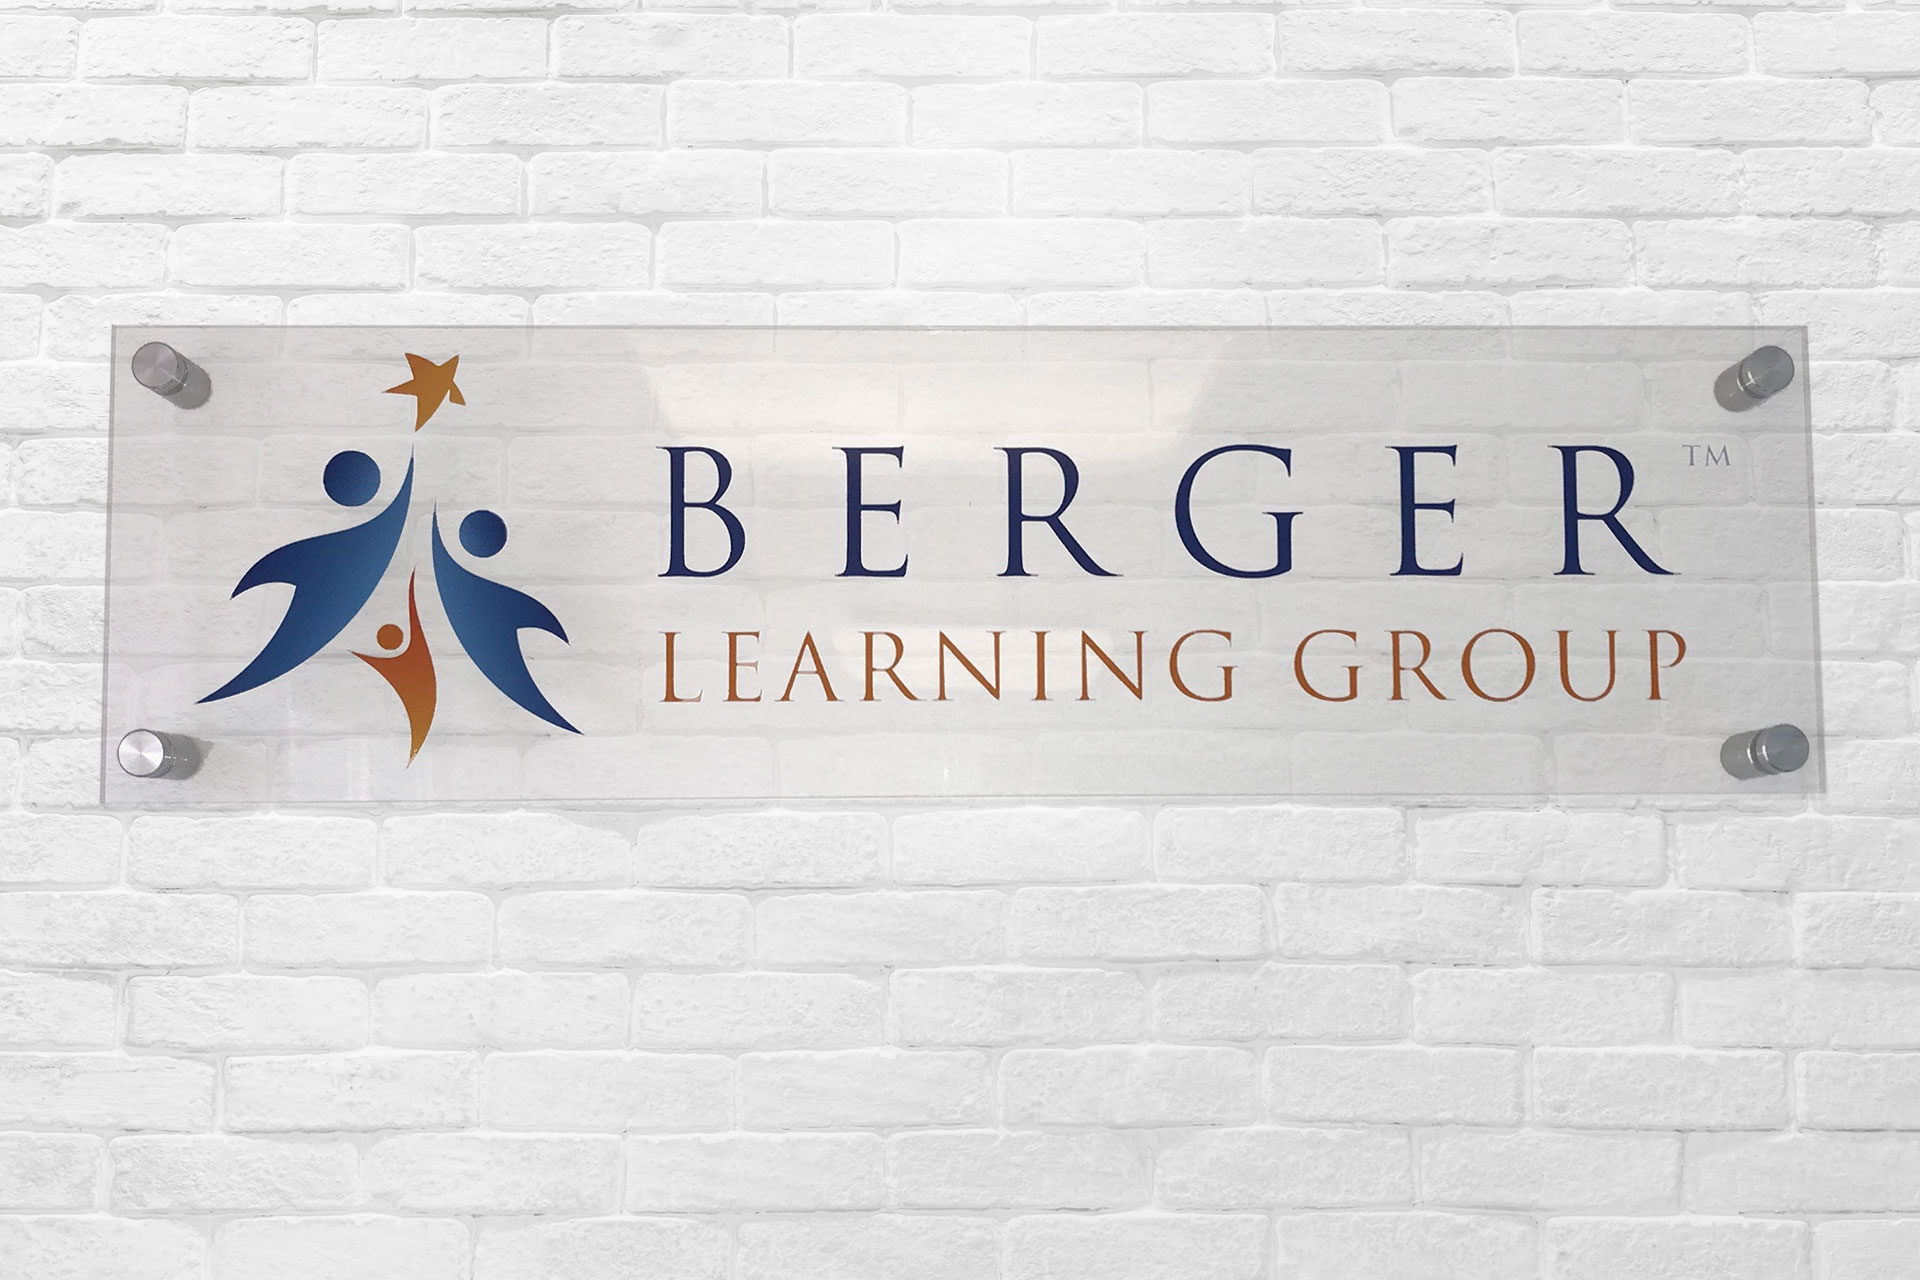 About Berger Learning Group – Berger Learning LLC